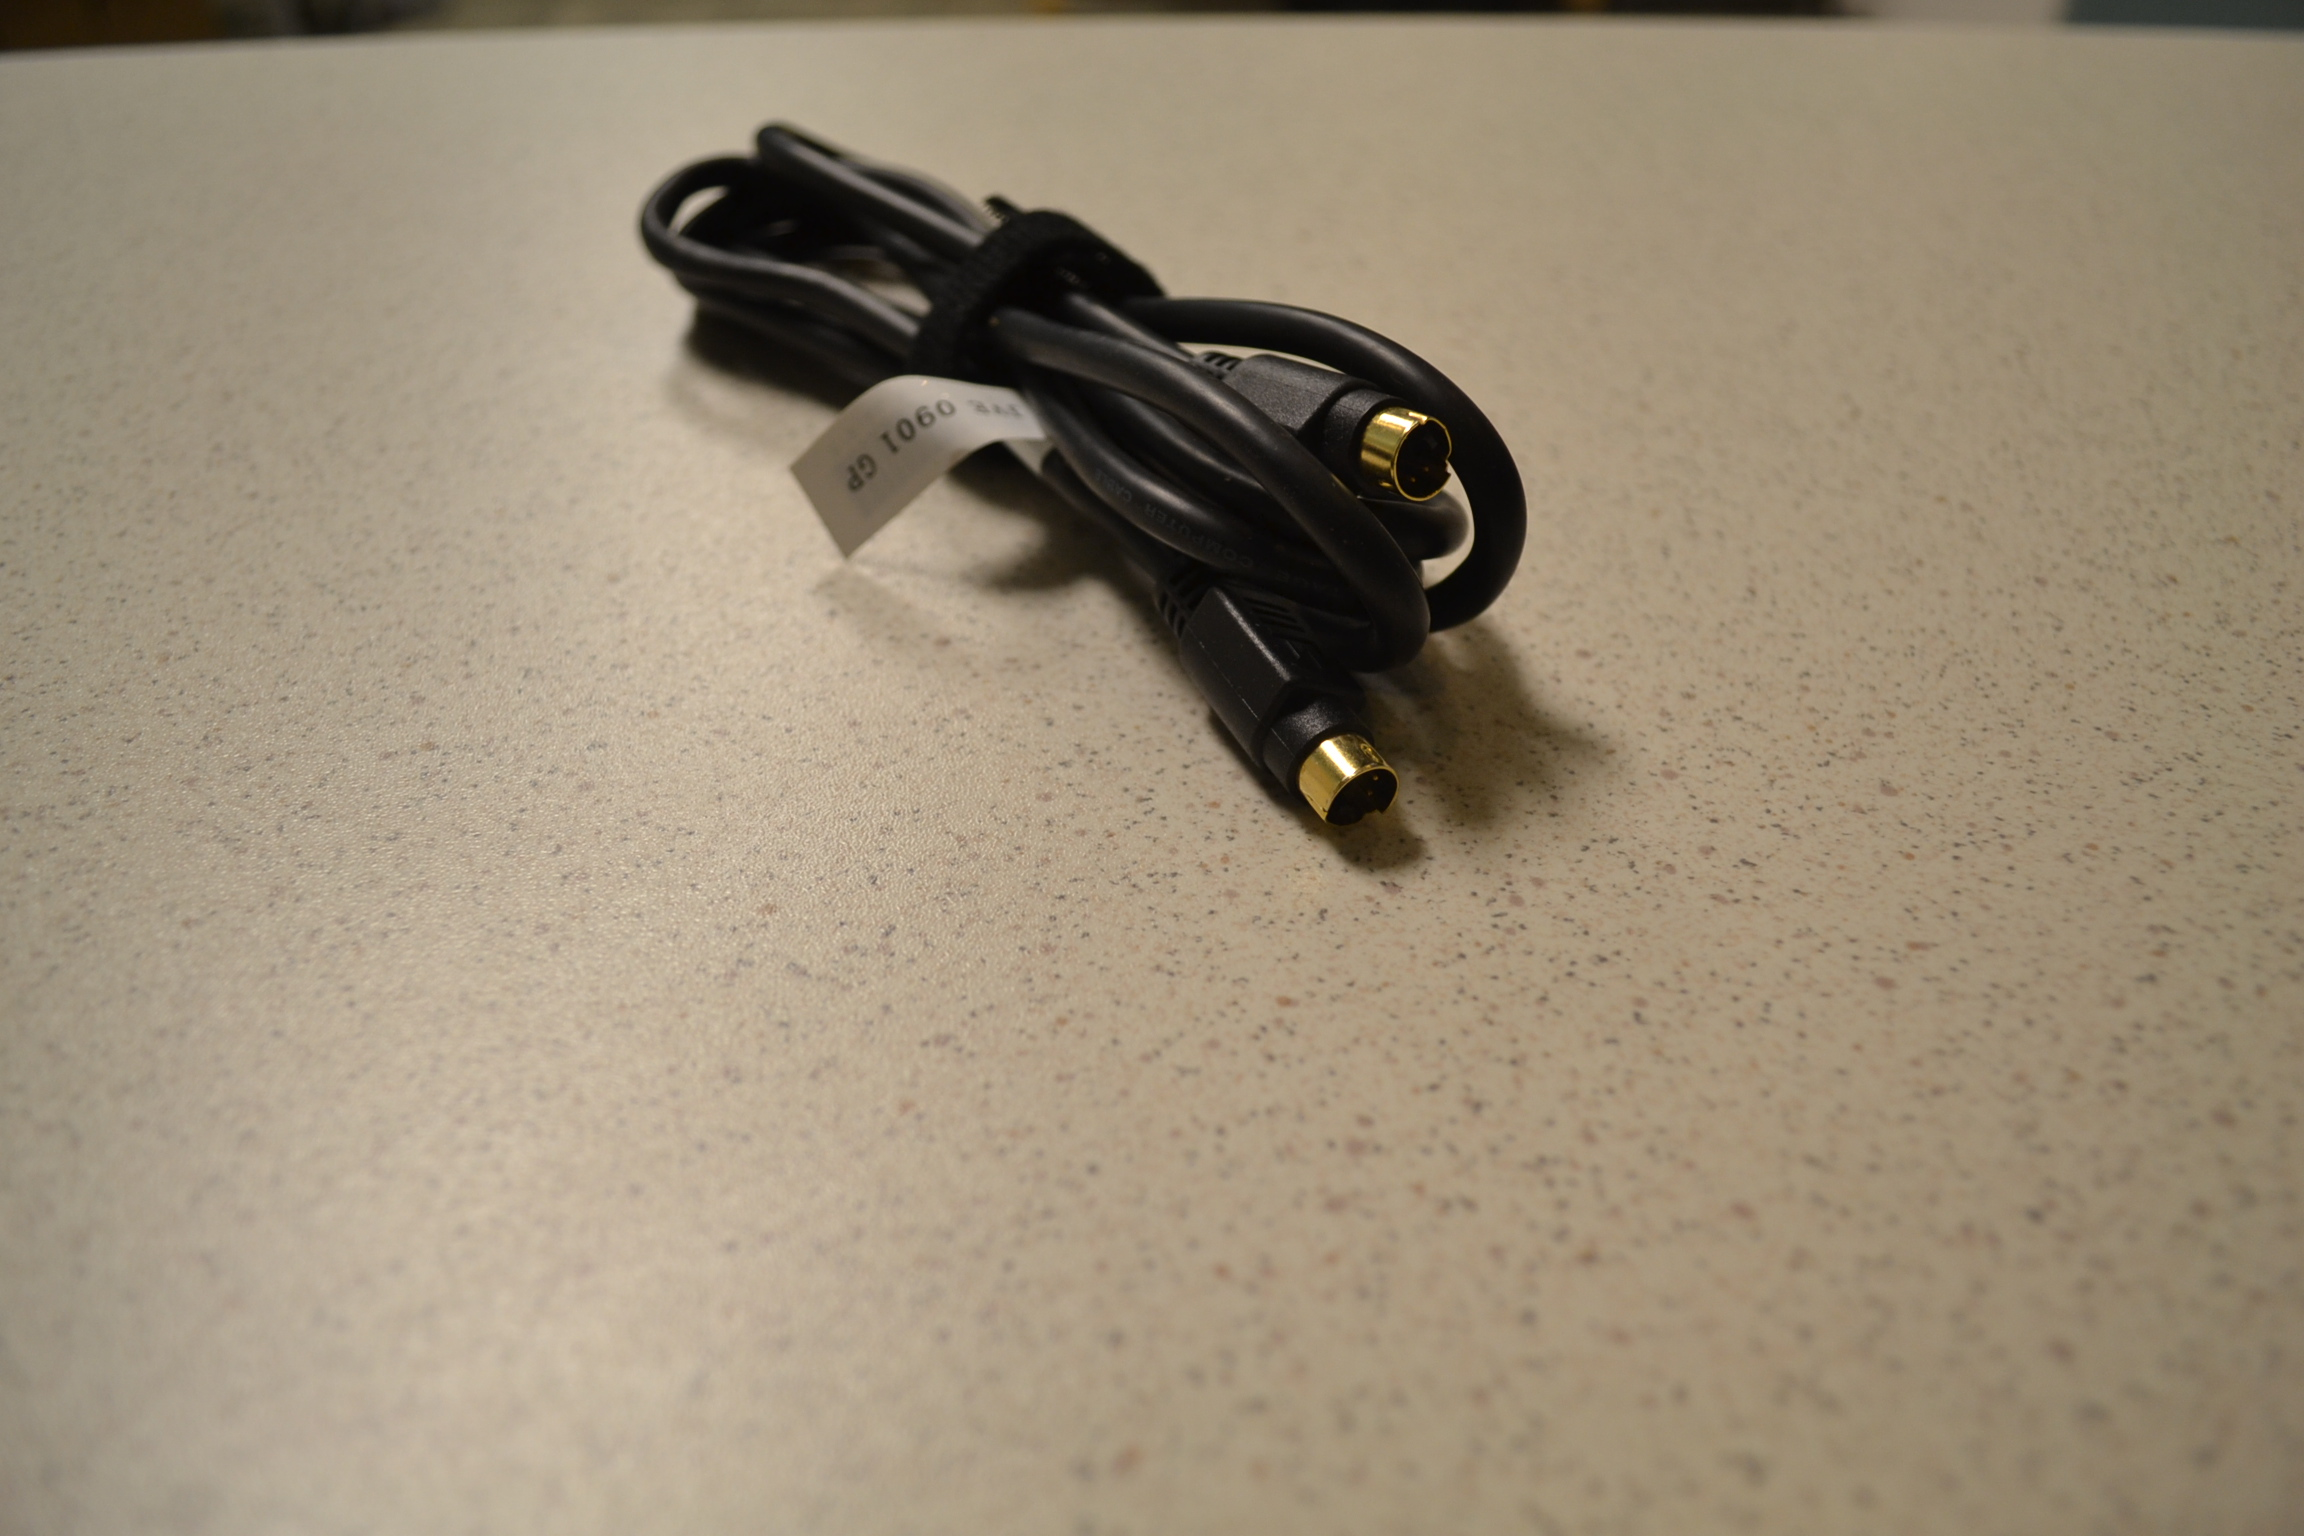 6FT 4-PIN S-Video Male To 4-PIN S-Video Male 42.82K11G001A